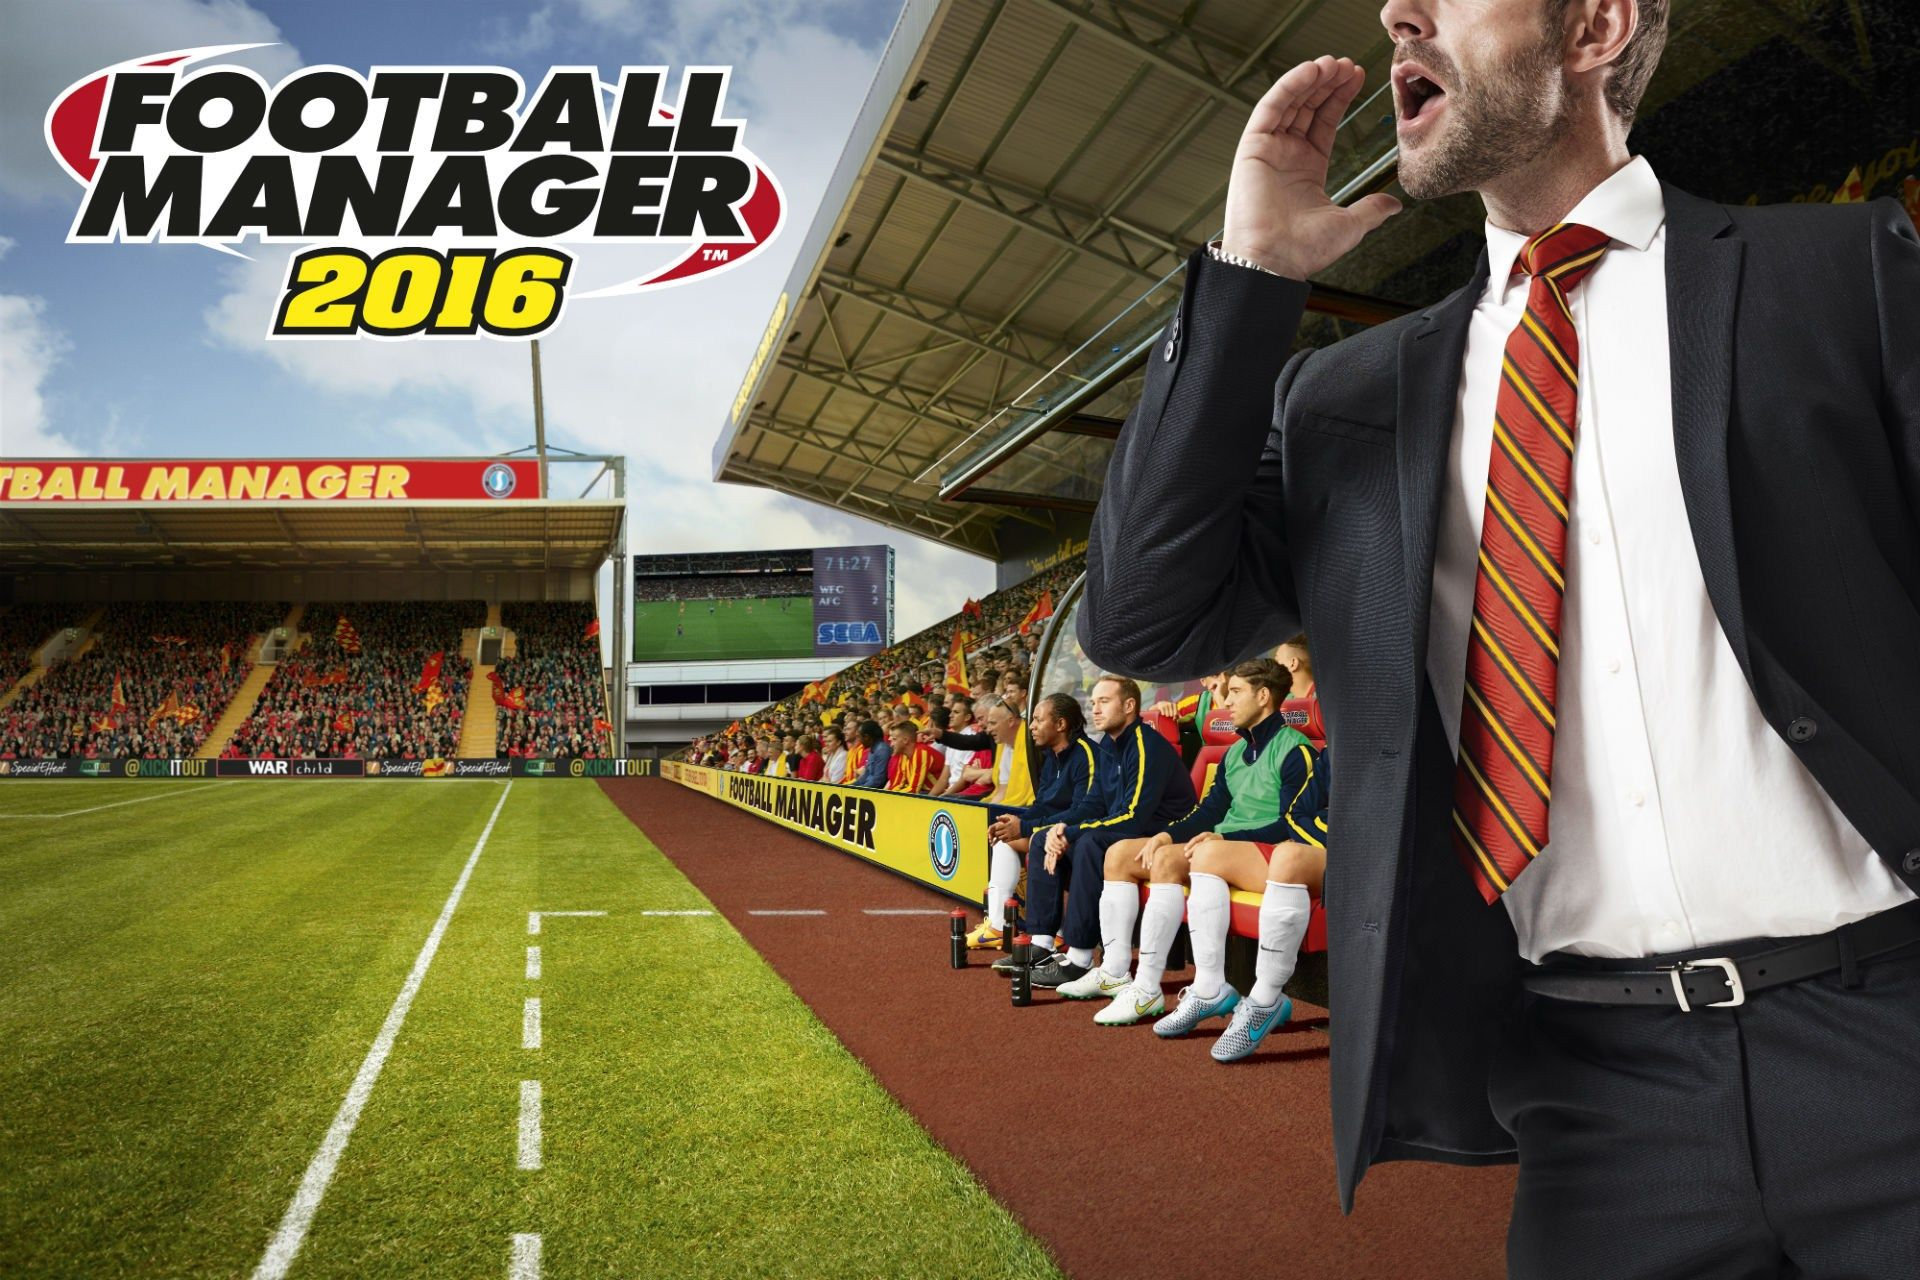 Free Football Manager 2016 Pc Game Download Full Version Iso Setup With Direct Download Links Download Fm 2016 Football Manager Football Manager 2016 Football